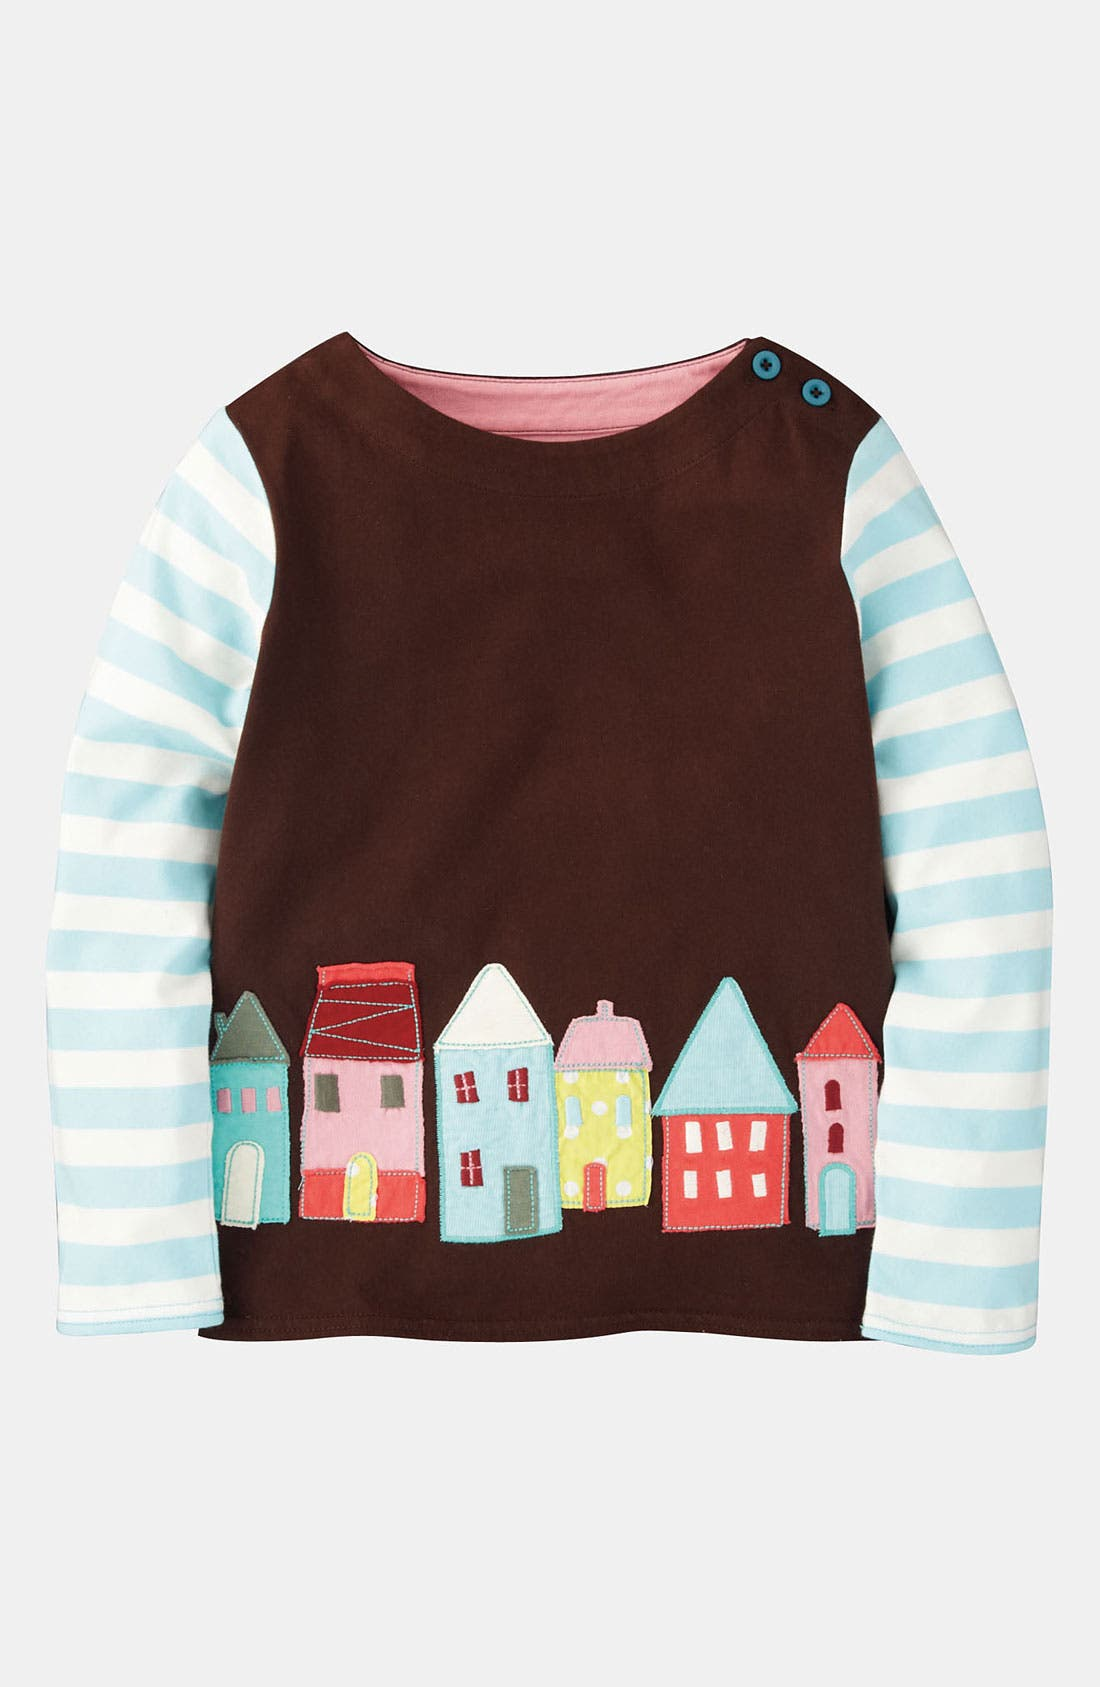 Alternate Image 1 Selected - Mini Boden 'Storybook' Appliqué Tee (Little Girls & Big Girls)